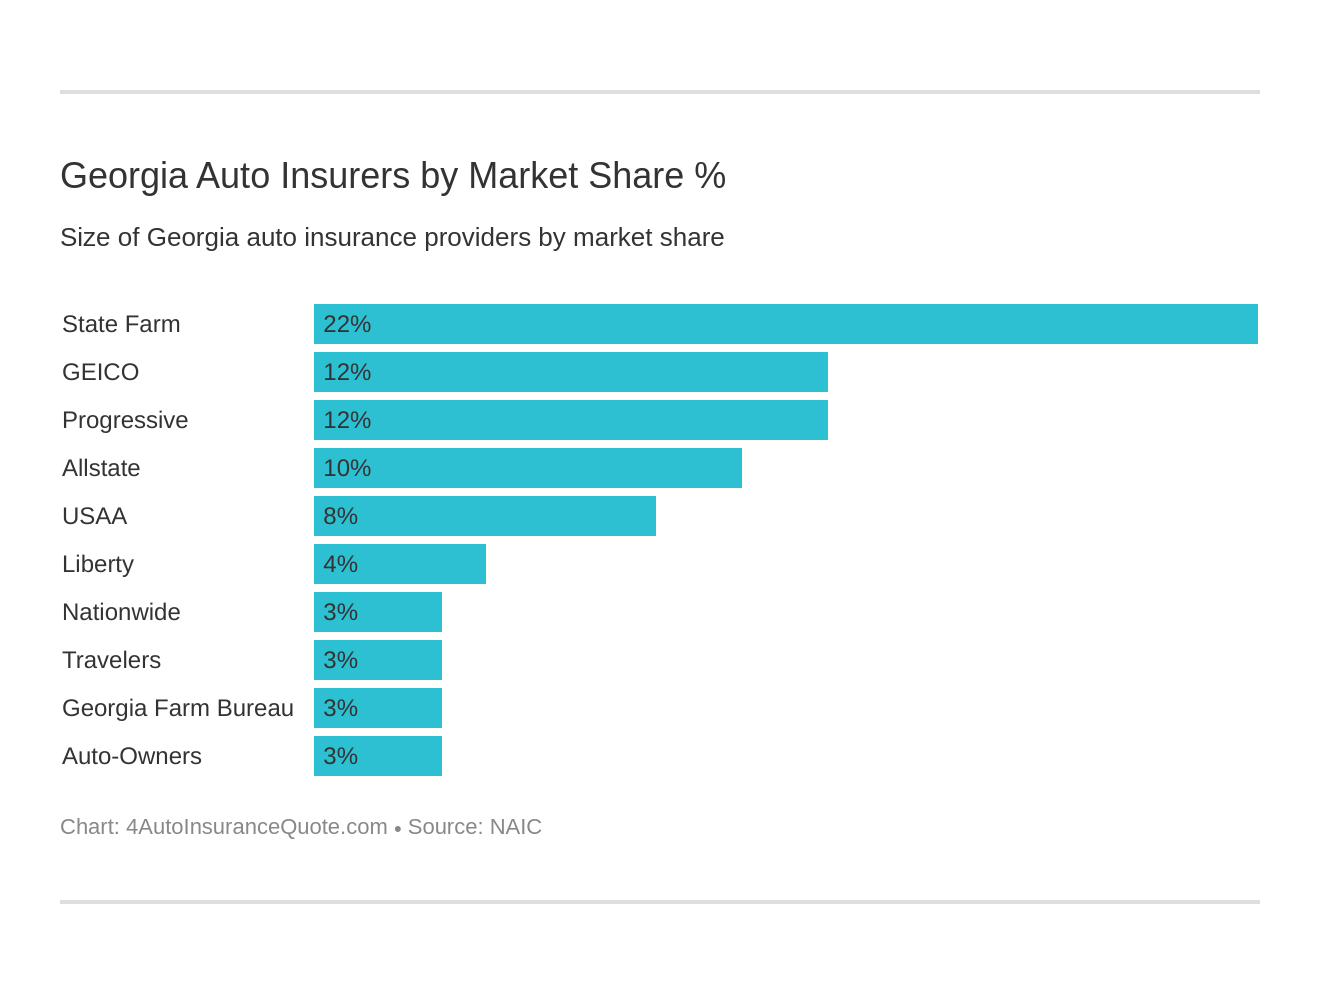 Georgia Auto Insurers by Market Share %